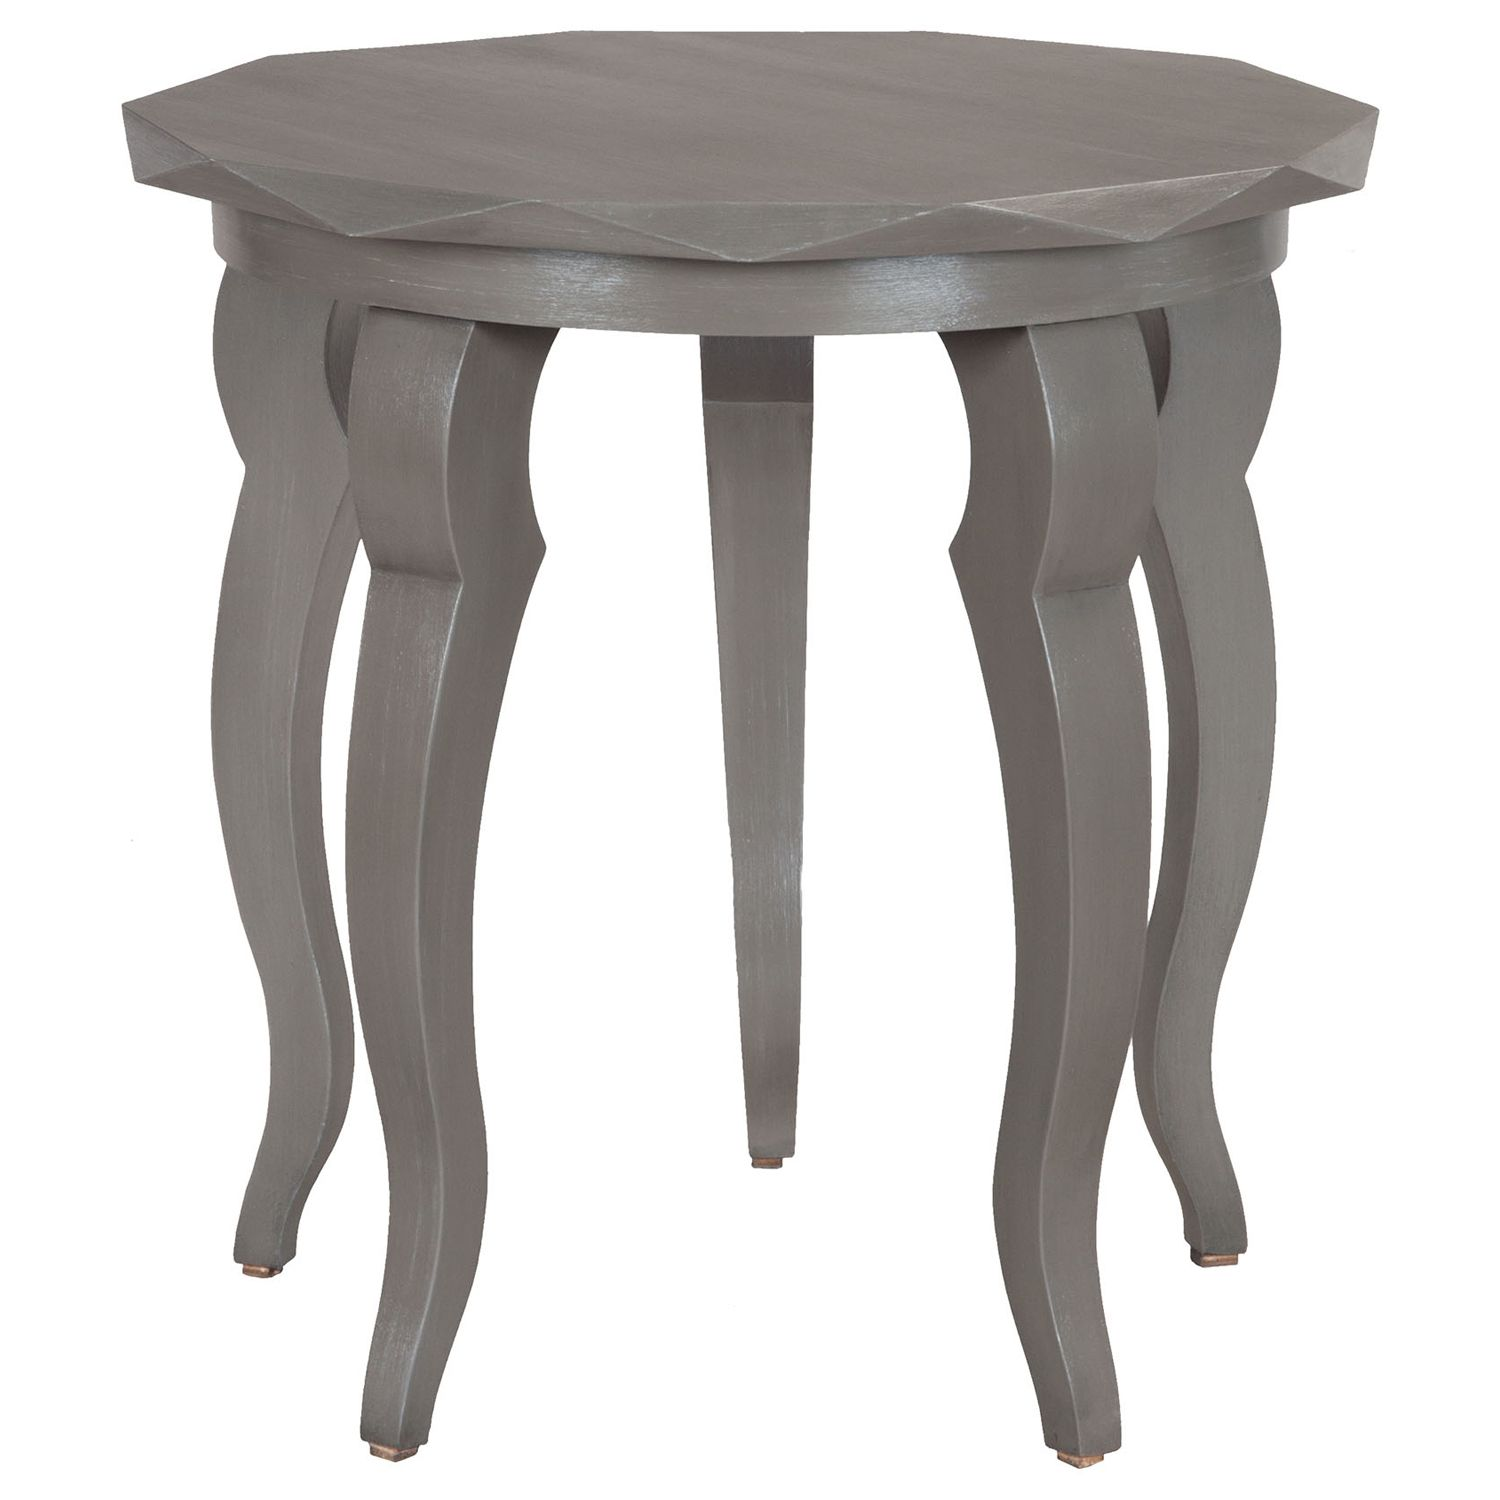 danton accent table laylagrayce nursery metal small round wicker coffee with glass top large square marble modern chairs salvaged wood trestle dining counter height room sets